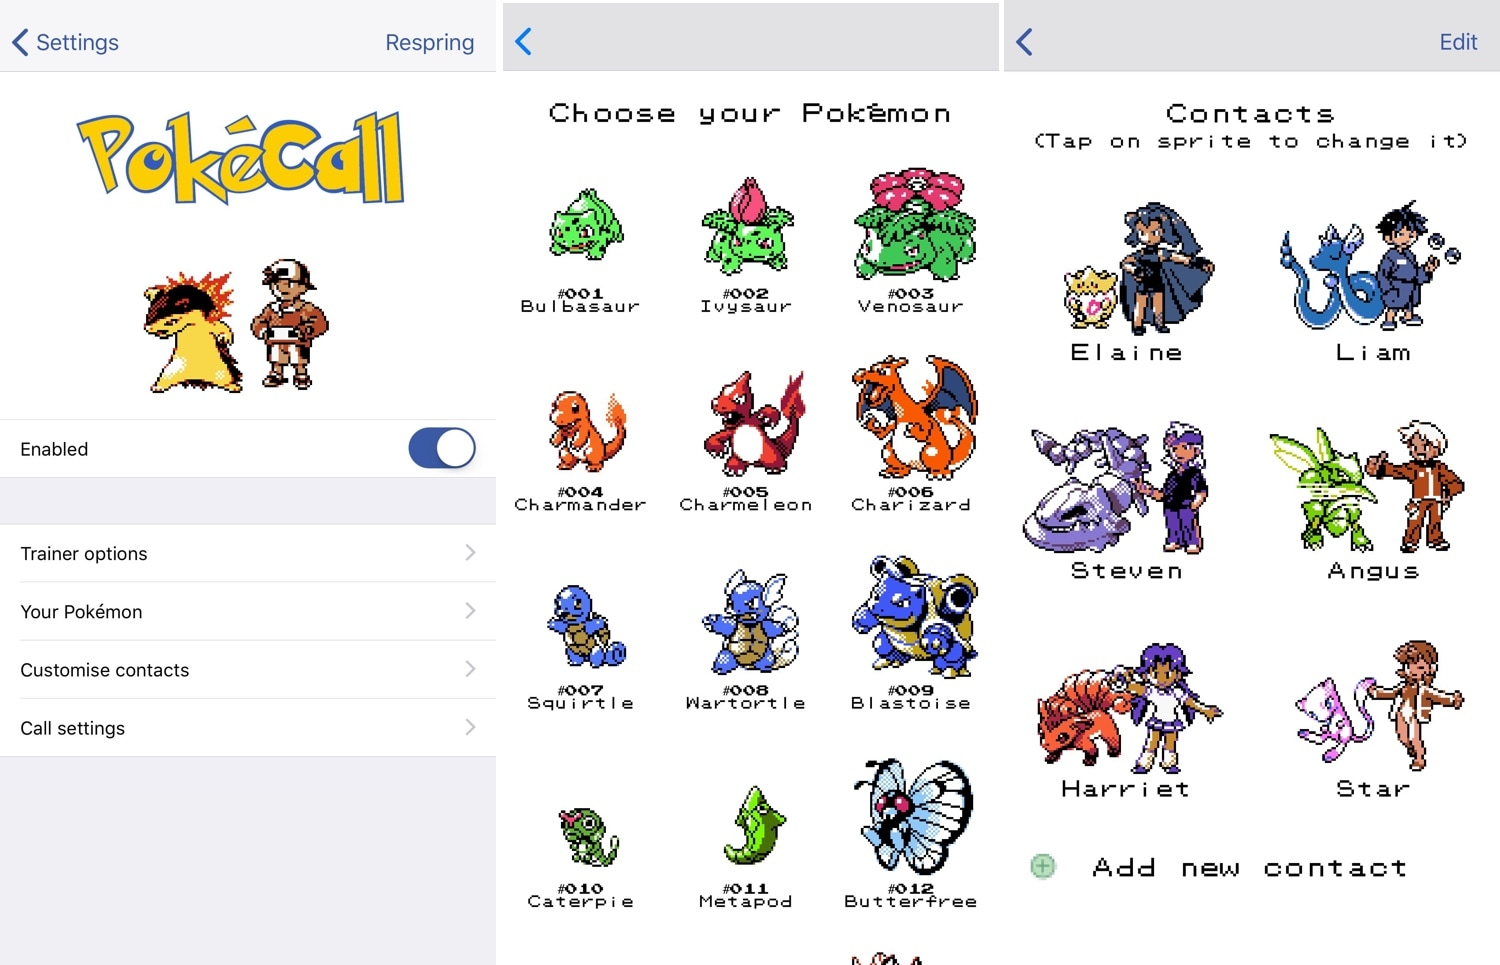 PokeCall brings a classic Pokémon-centric makeover to the